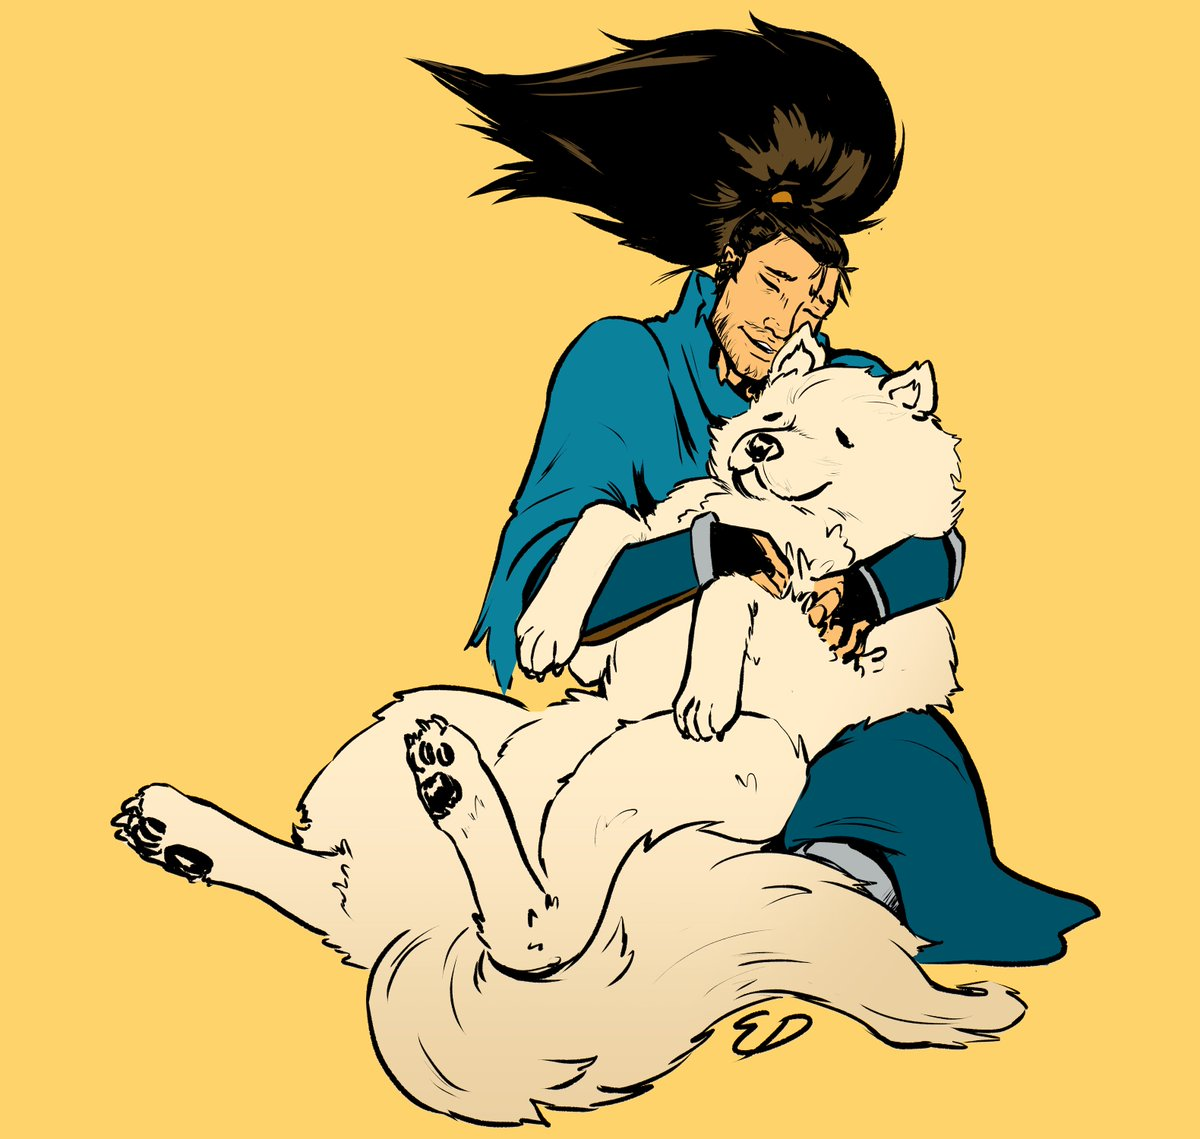 Back at it again drawing Yasuo with a Samoyed... this is my brand now (inspired by that one dog video going around) #ArtOfLegends #Yasuo<br>http://pic.twitter.com/GJcTlkDW1o